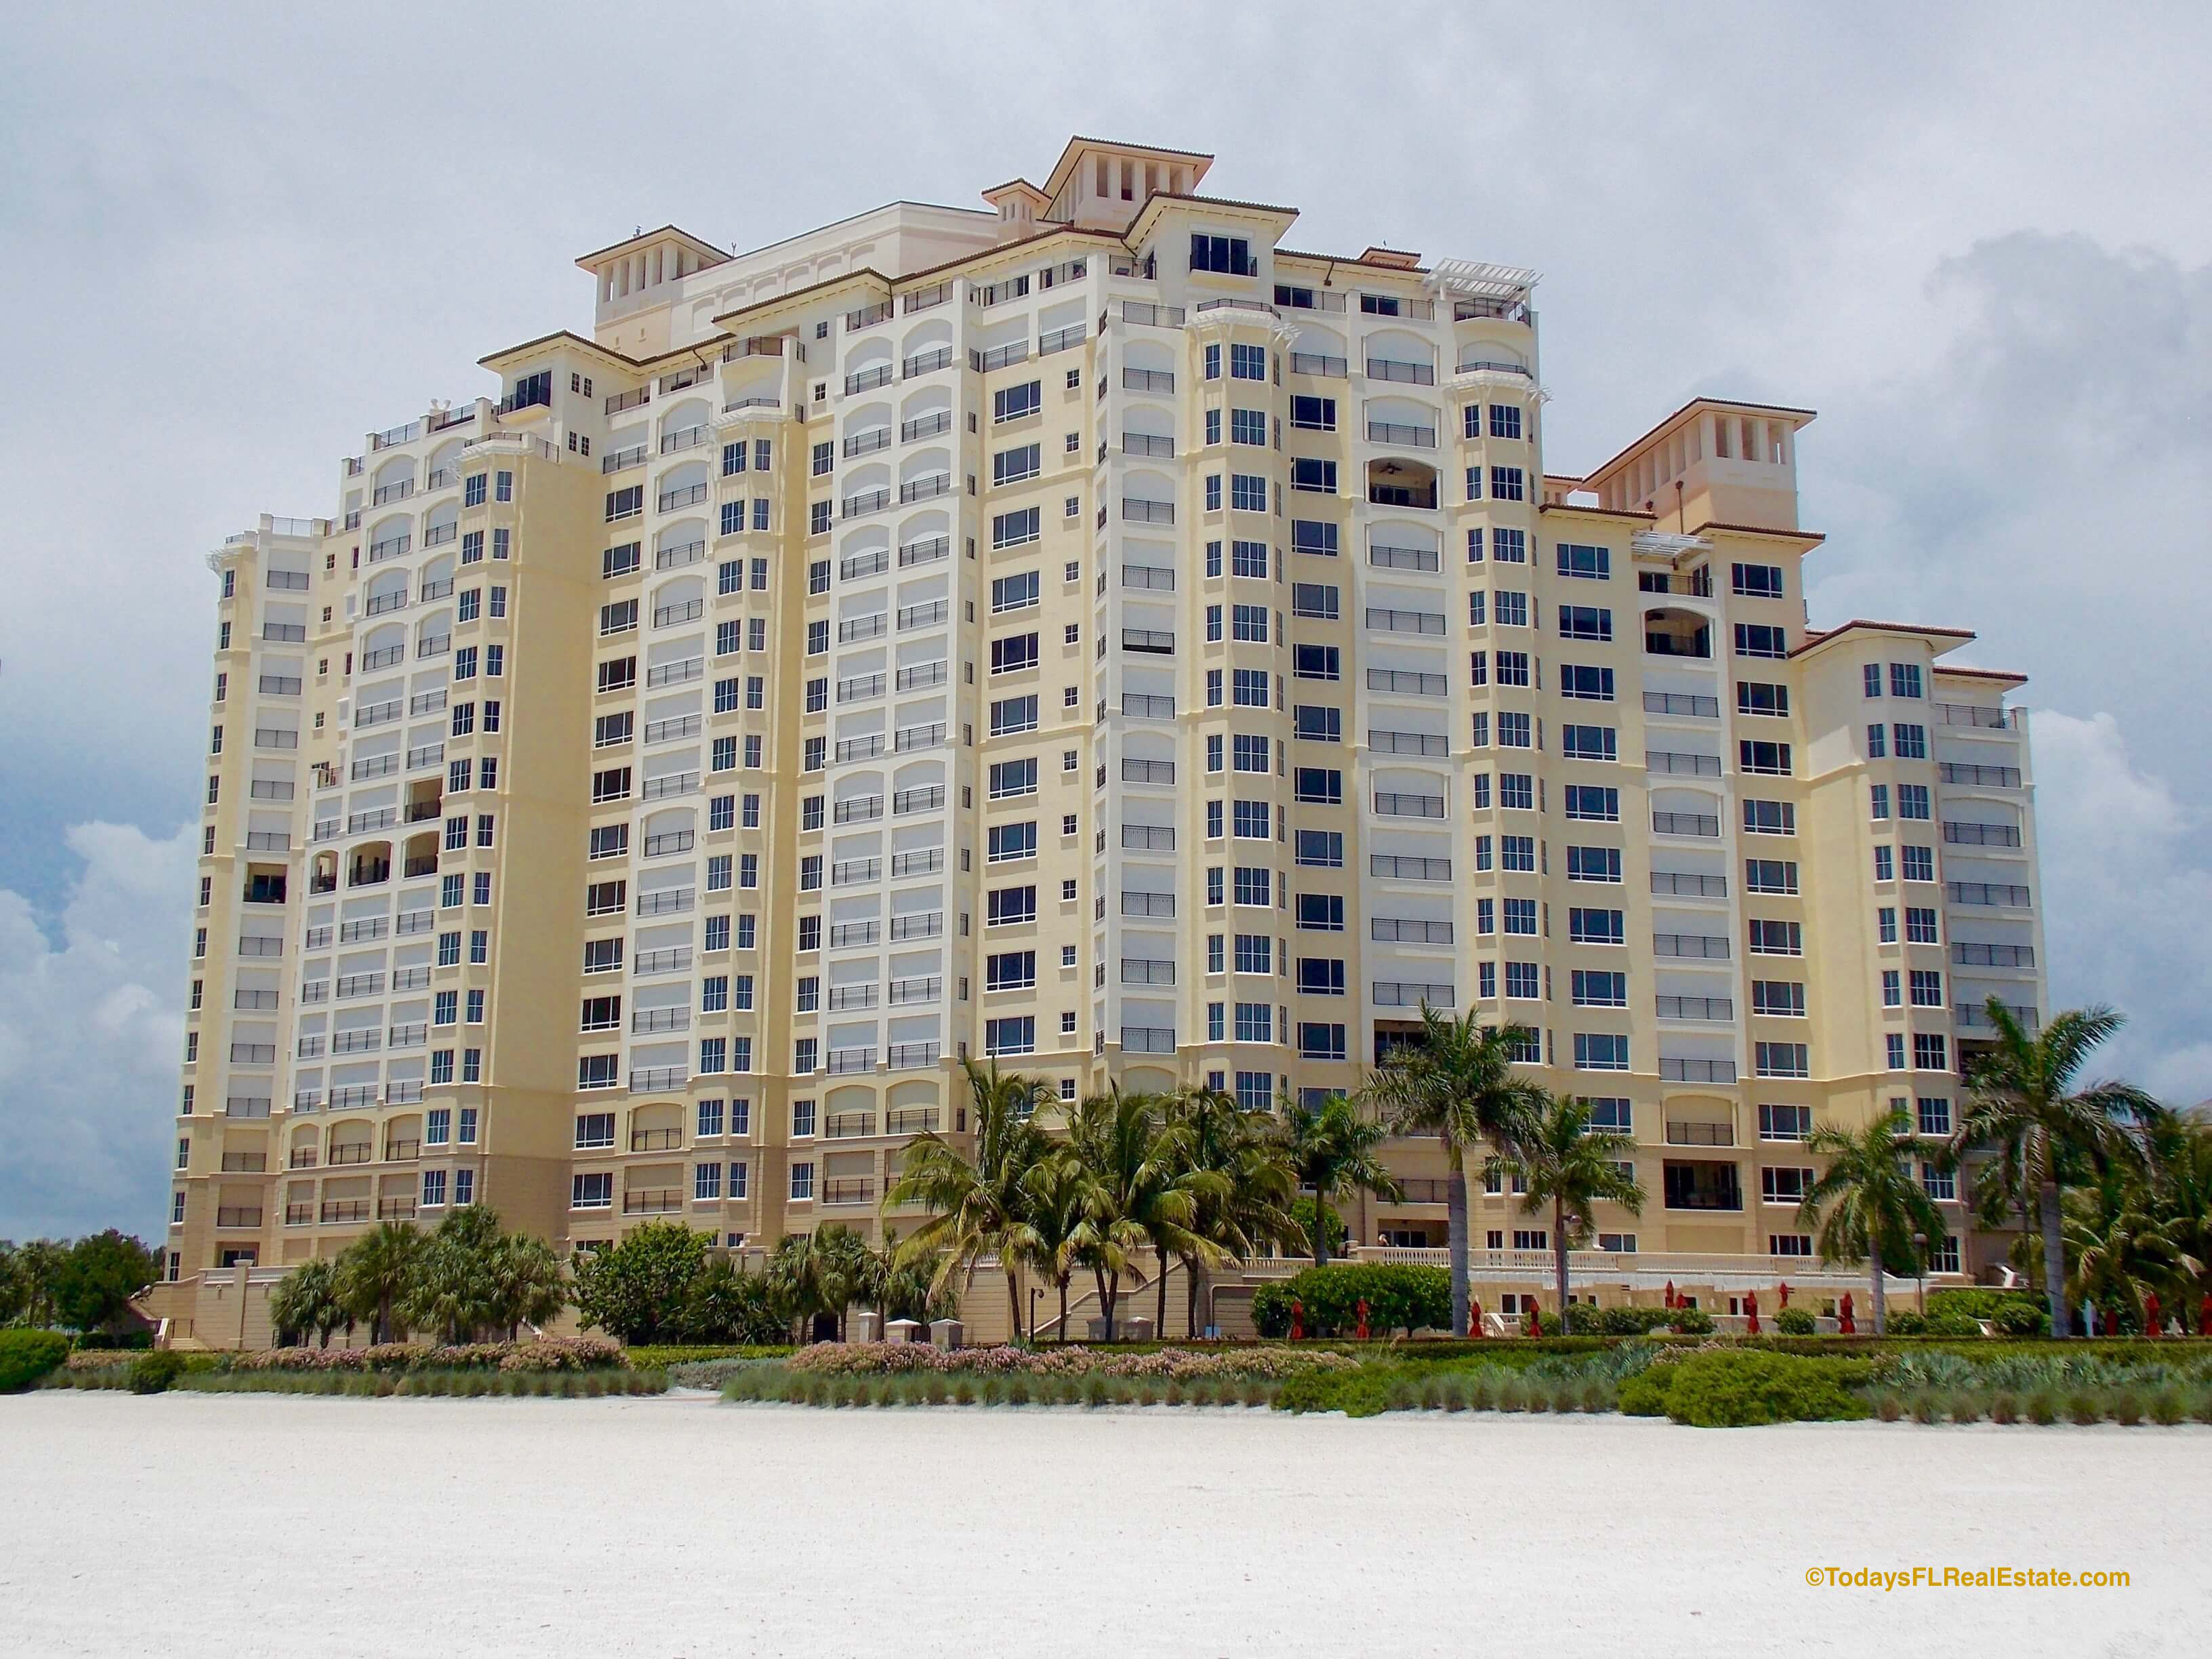 beachfront condos marco island florida, Marco Island Beachfront Condos for sale, oceanfront condos florida, southwest florida oceanfront condos